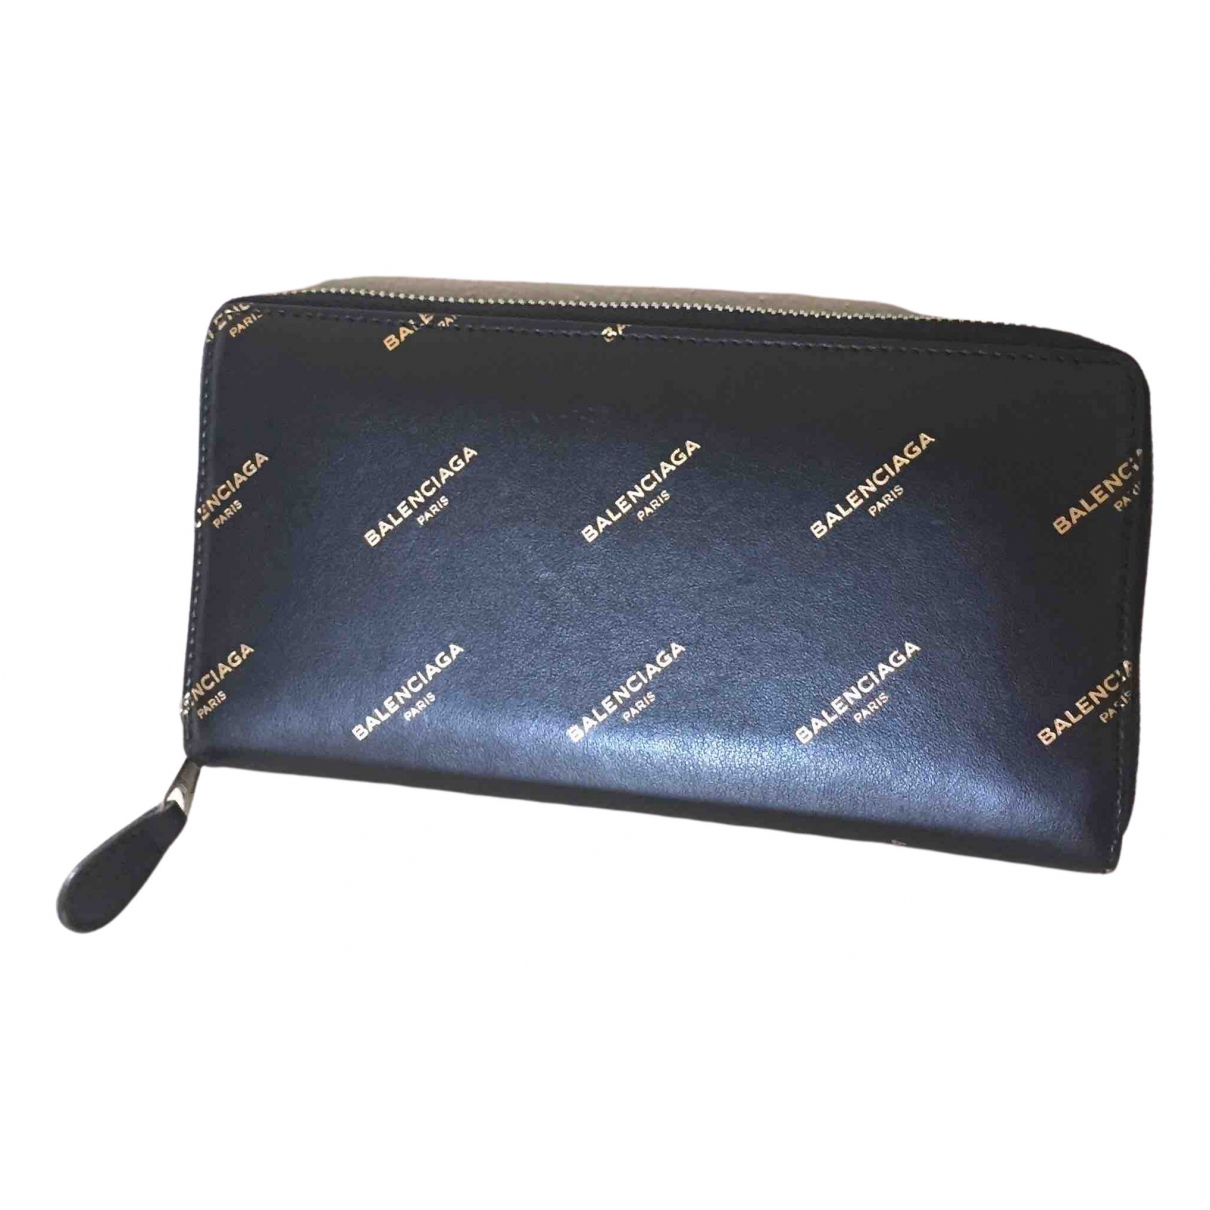 Balenciaga \N Black Leather wallet for Women \N